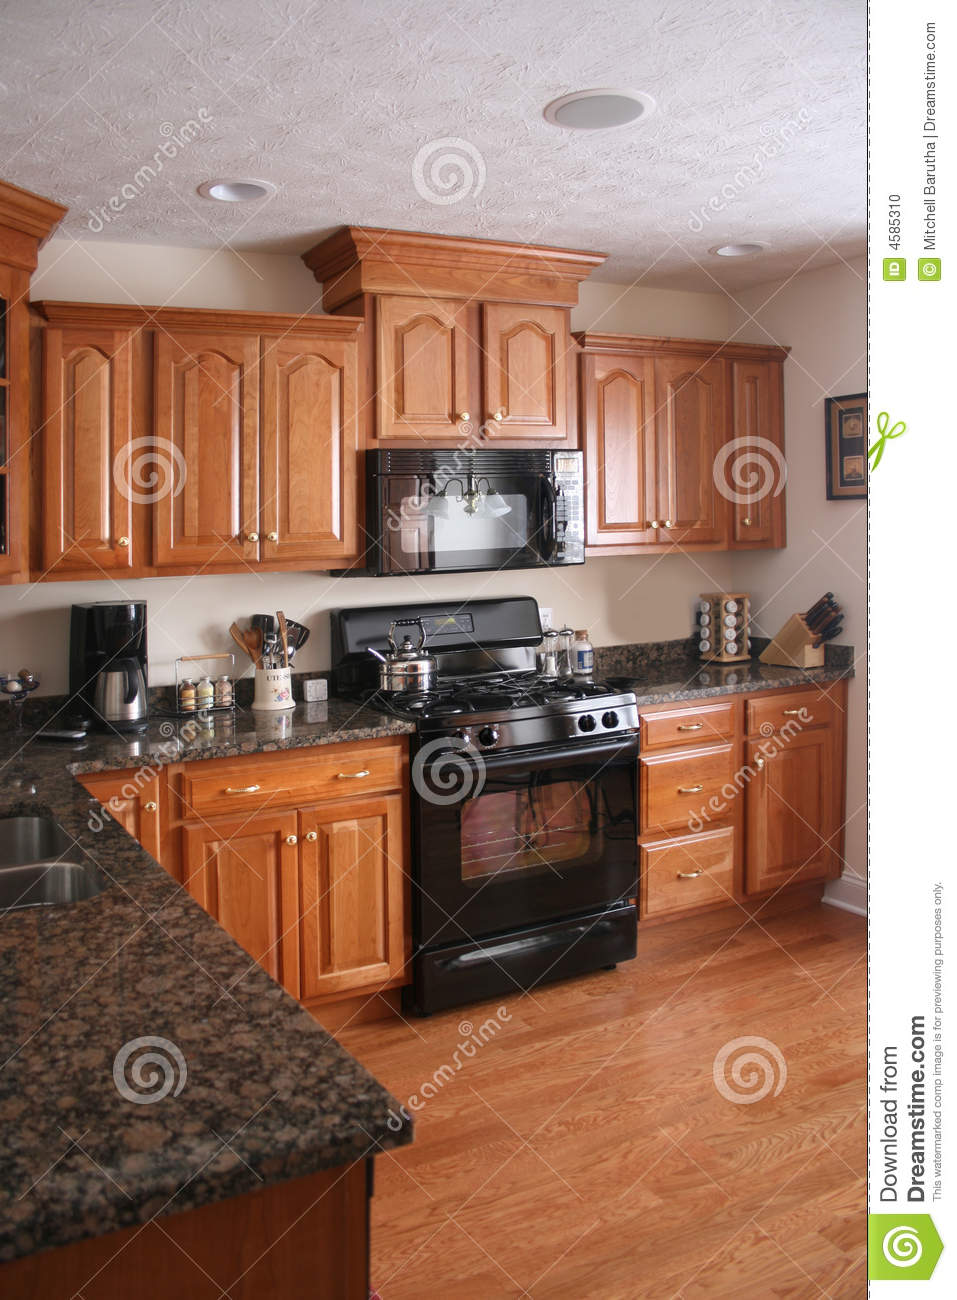 Kitchen Wood Cabinets Black Stove Stock Photo Image 4585310